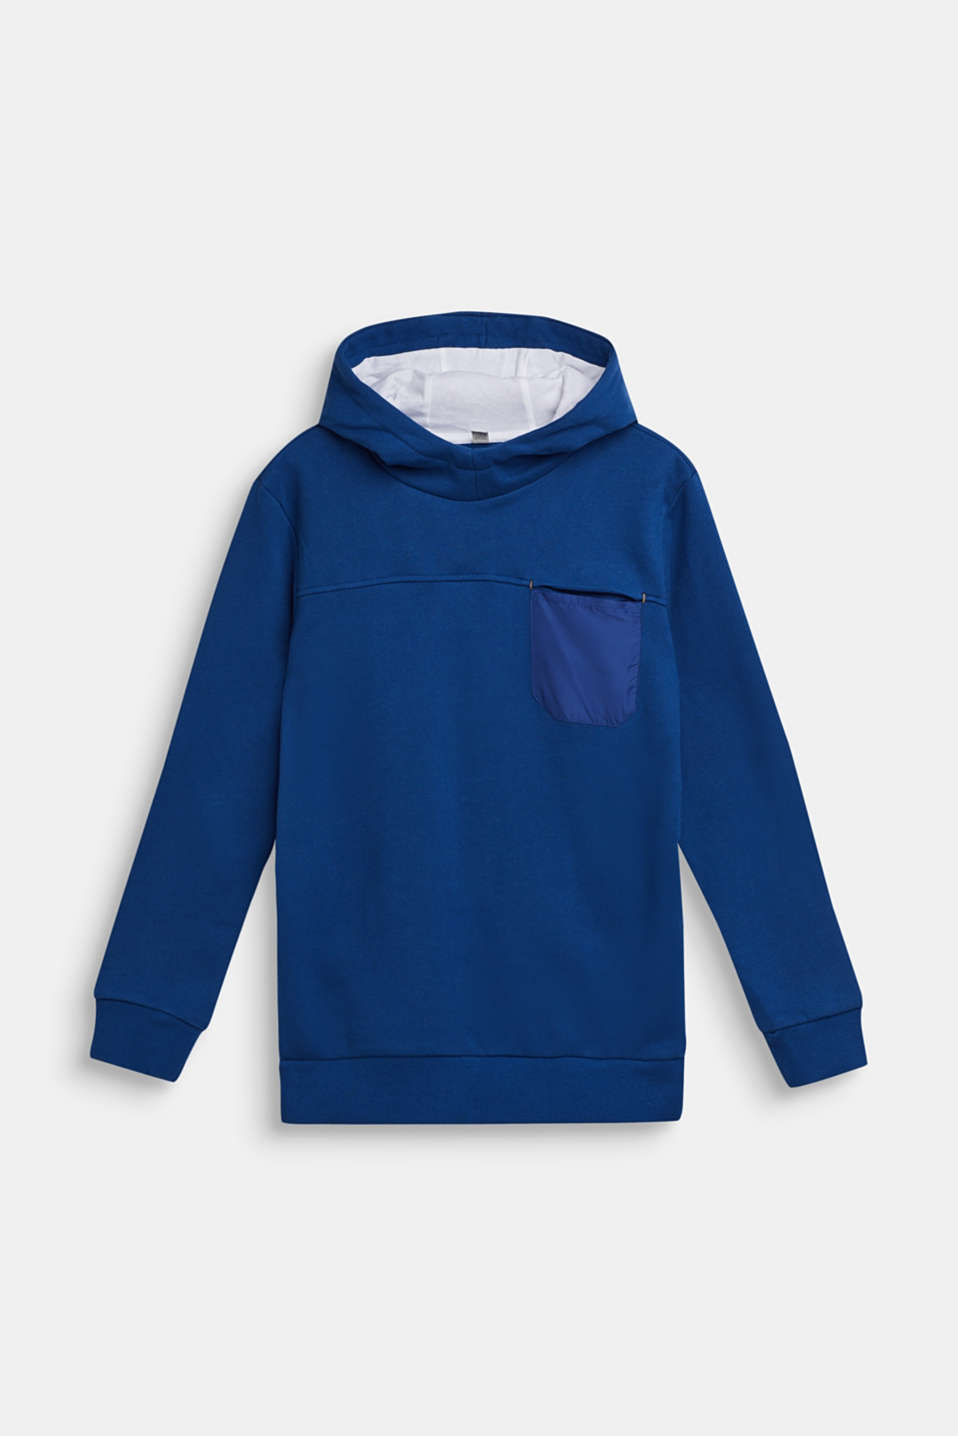 Esprit - Hoodie with statement print, 100% cotton